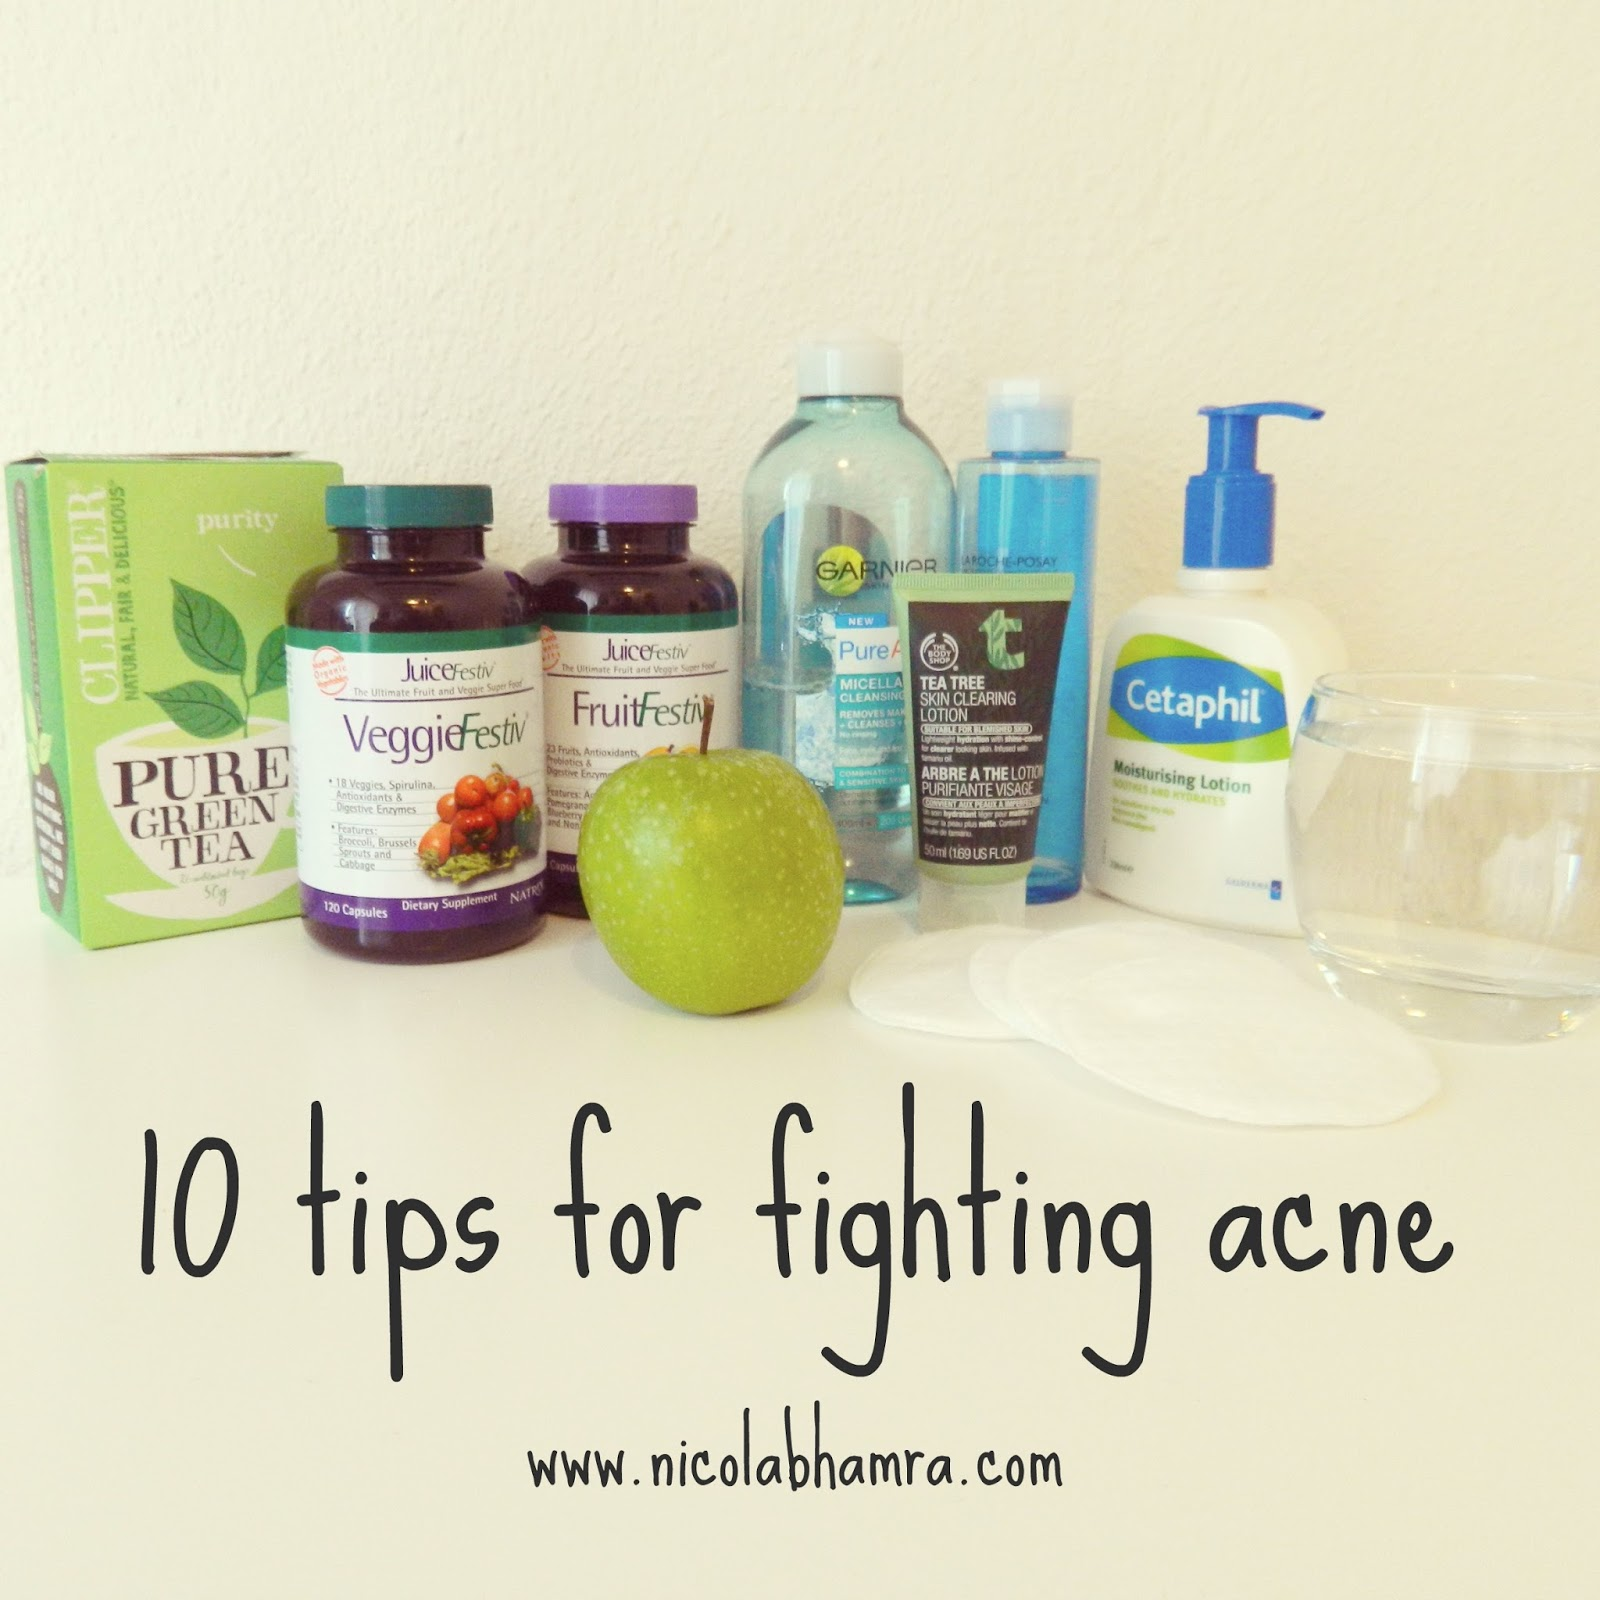 Acne fighting tips